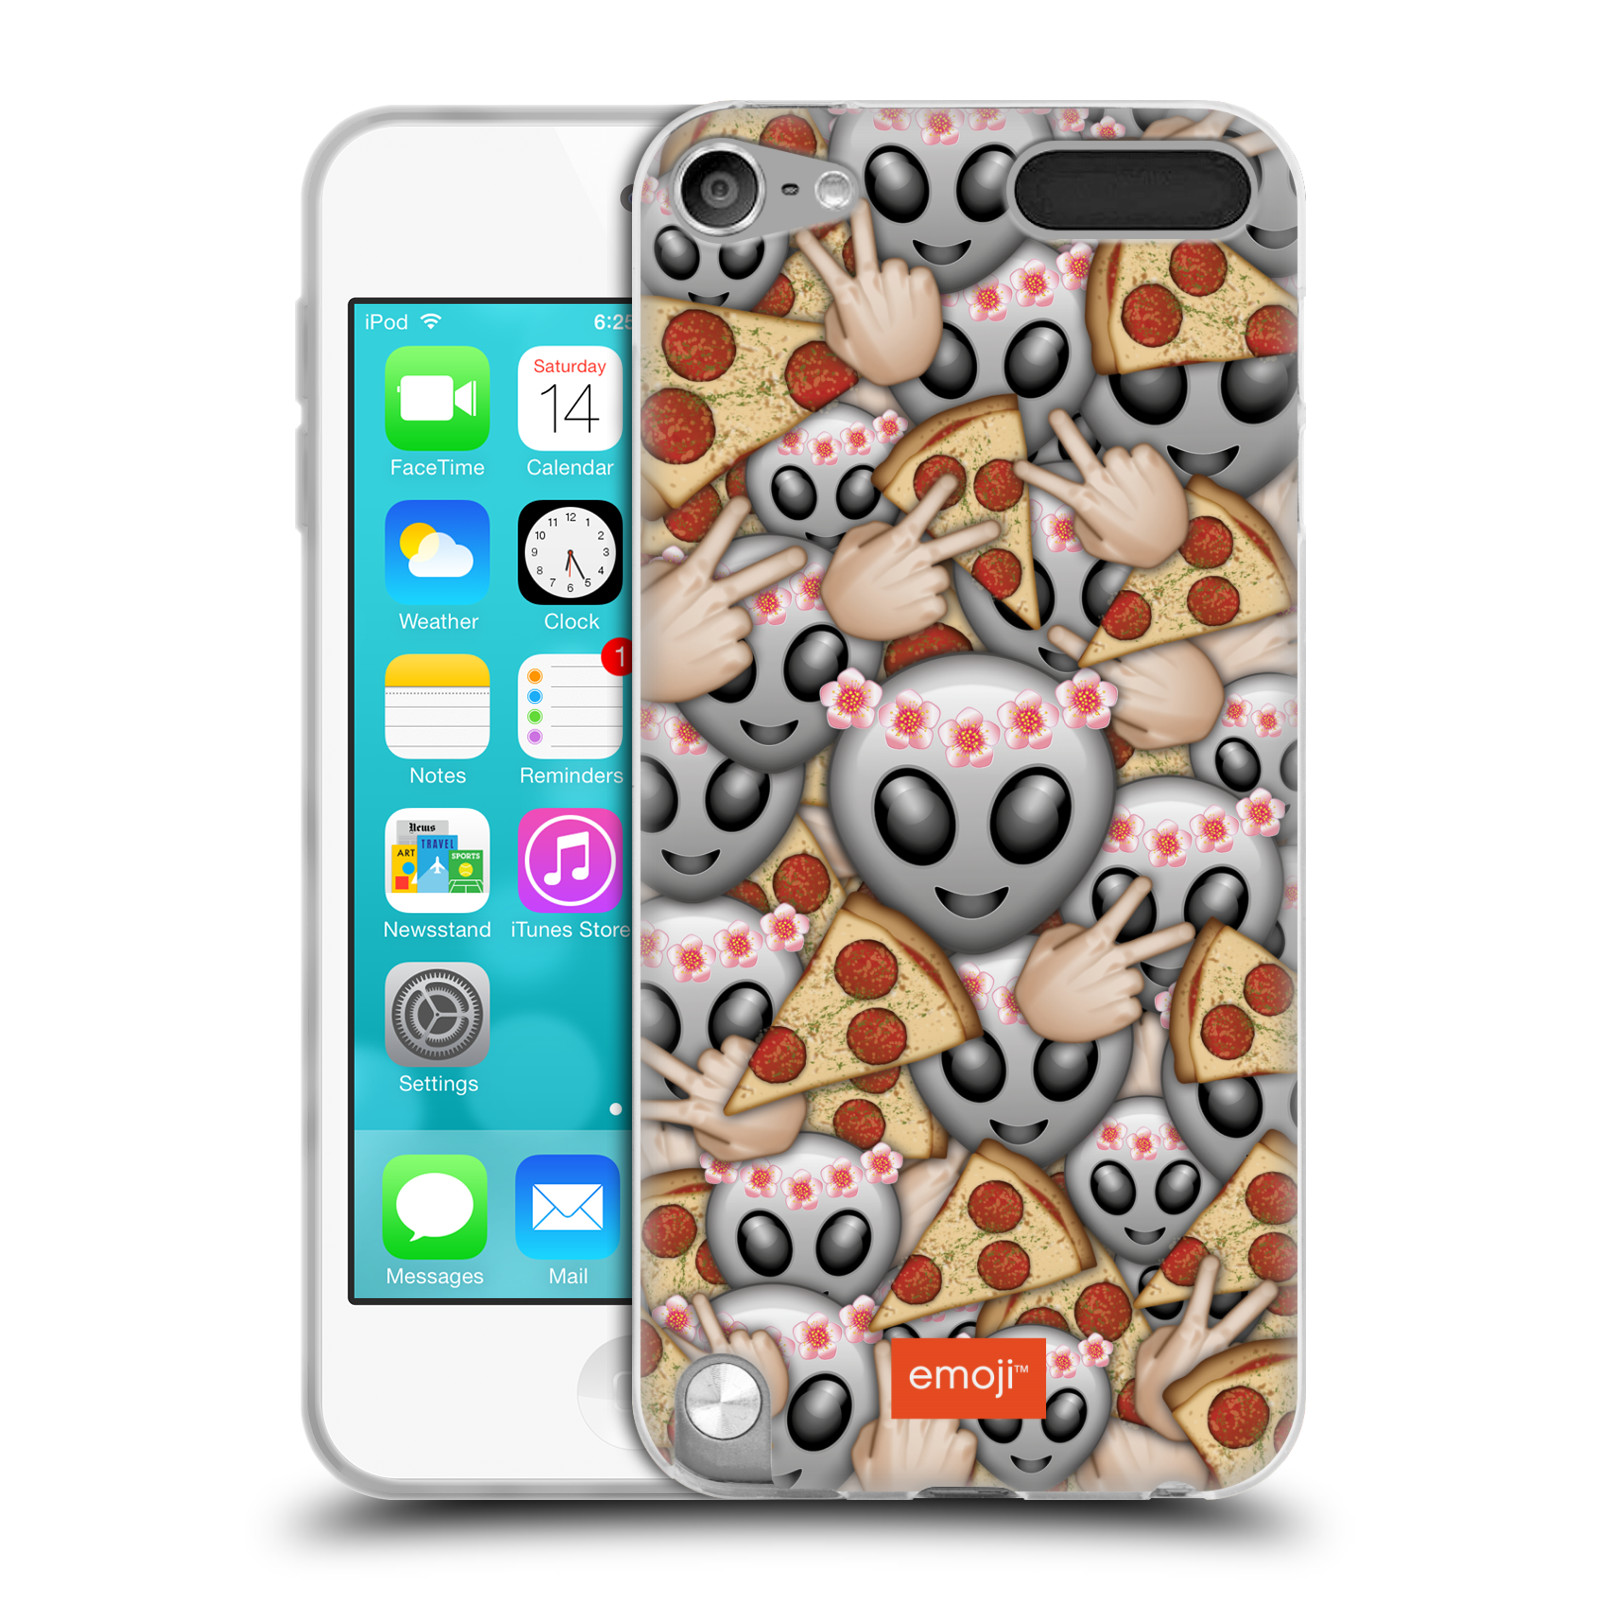 OFFICIAL EMOJI FULL PATTERNS SOFT GEL CASE FOR APPLE IPOD TOUCH MP3